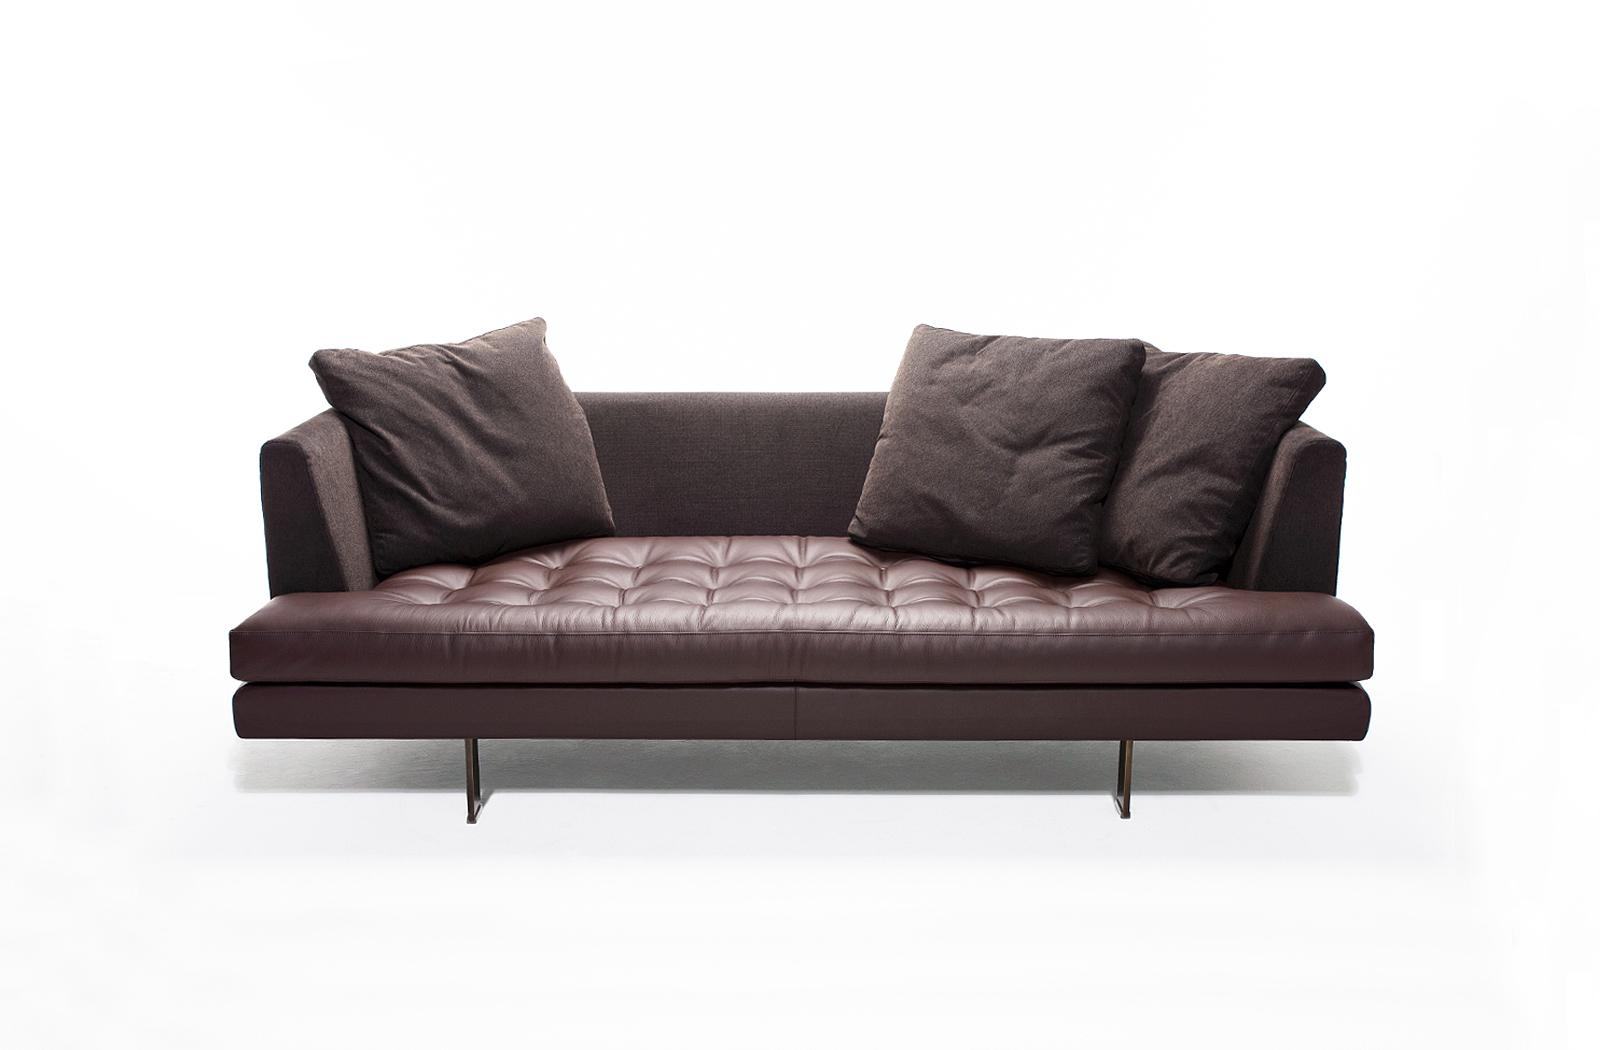 Edward | Bensen With Regard To Bensen Sofas (View 6 of 20)